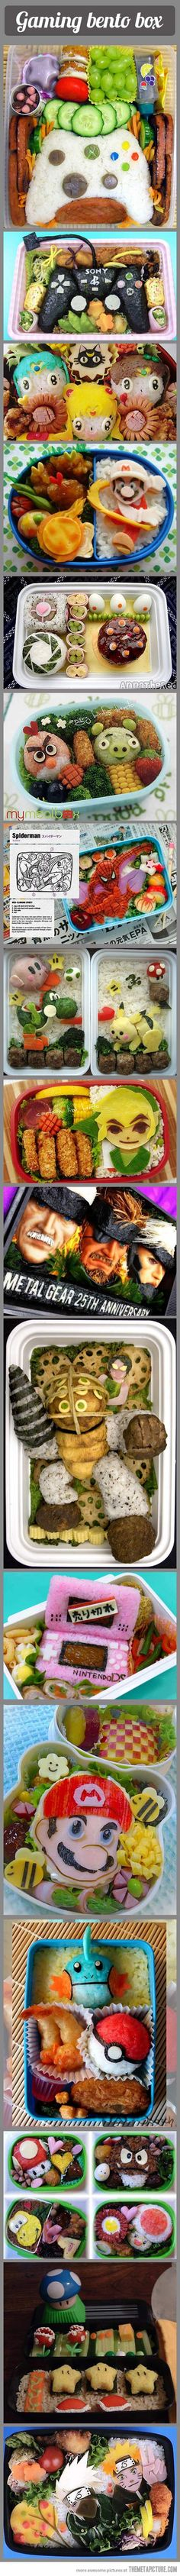 Gaming lunch box